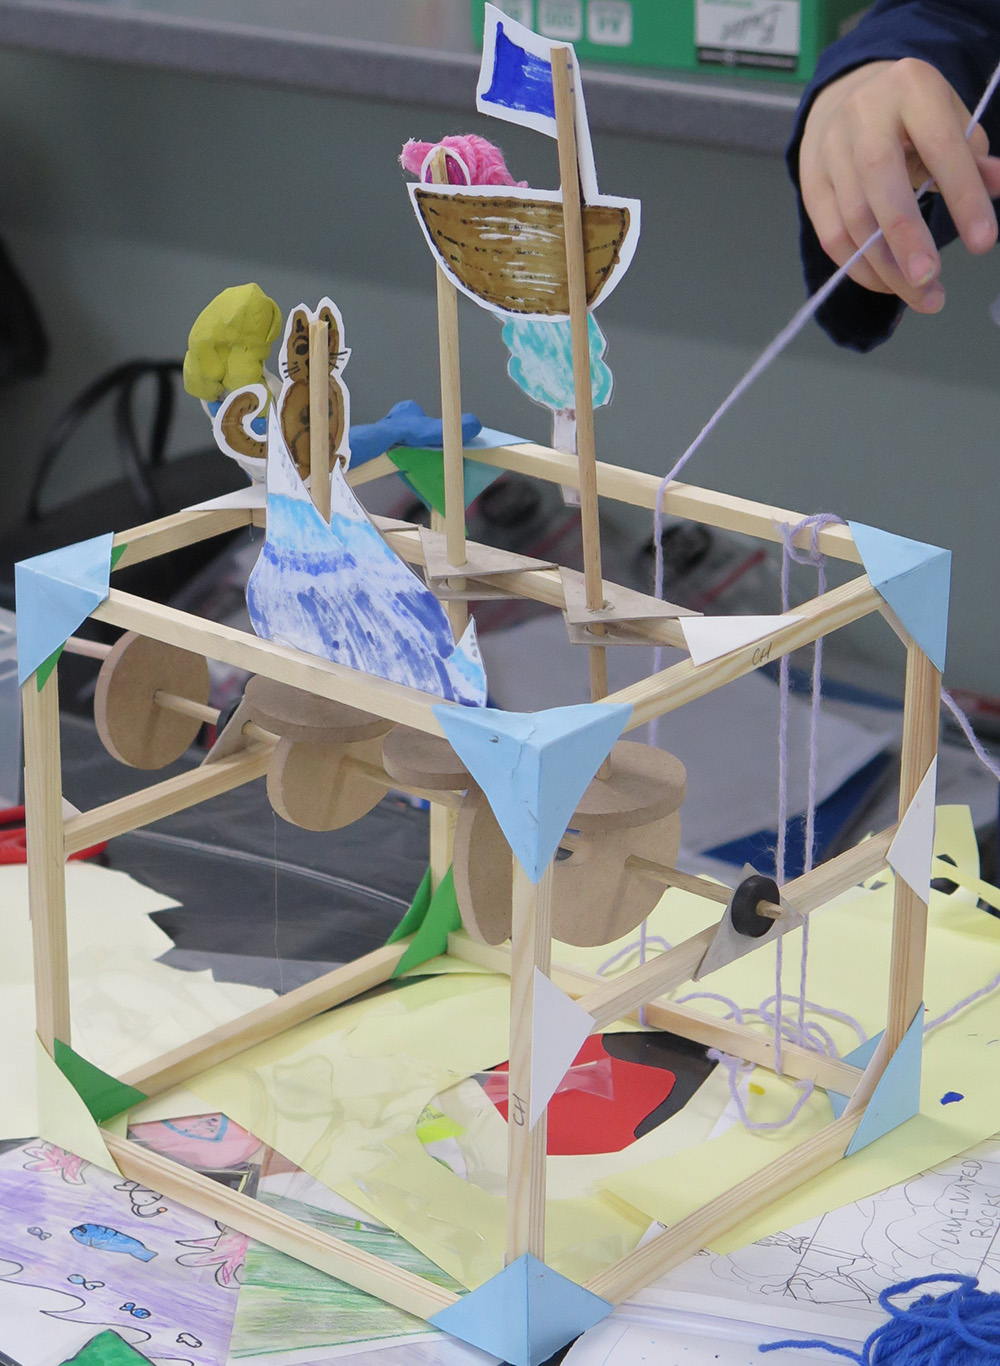 Mechanisms and structures – making a moving toy or clock explain the content of a historical painting.